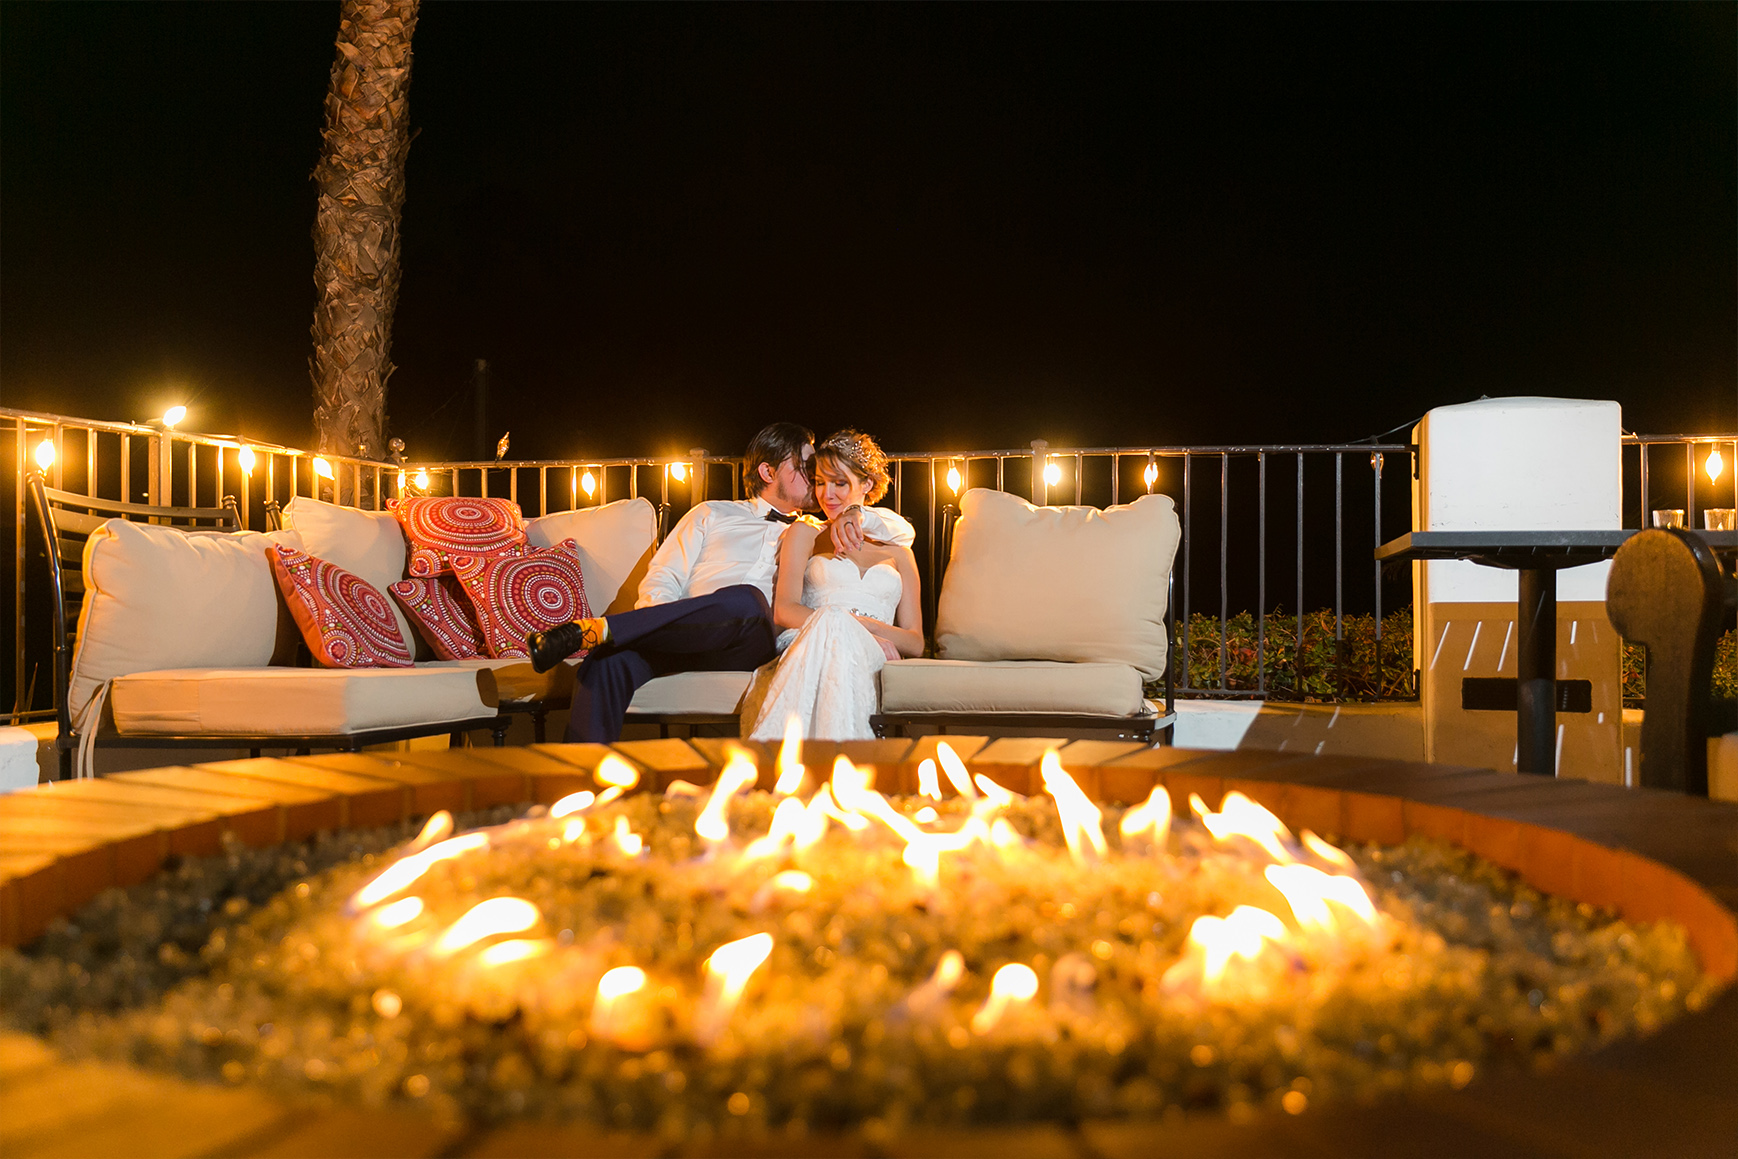 Fireside romance - San Clemente - San Clemente, California - Orange County - Wedgewood Weddings